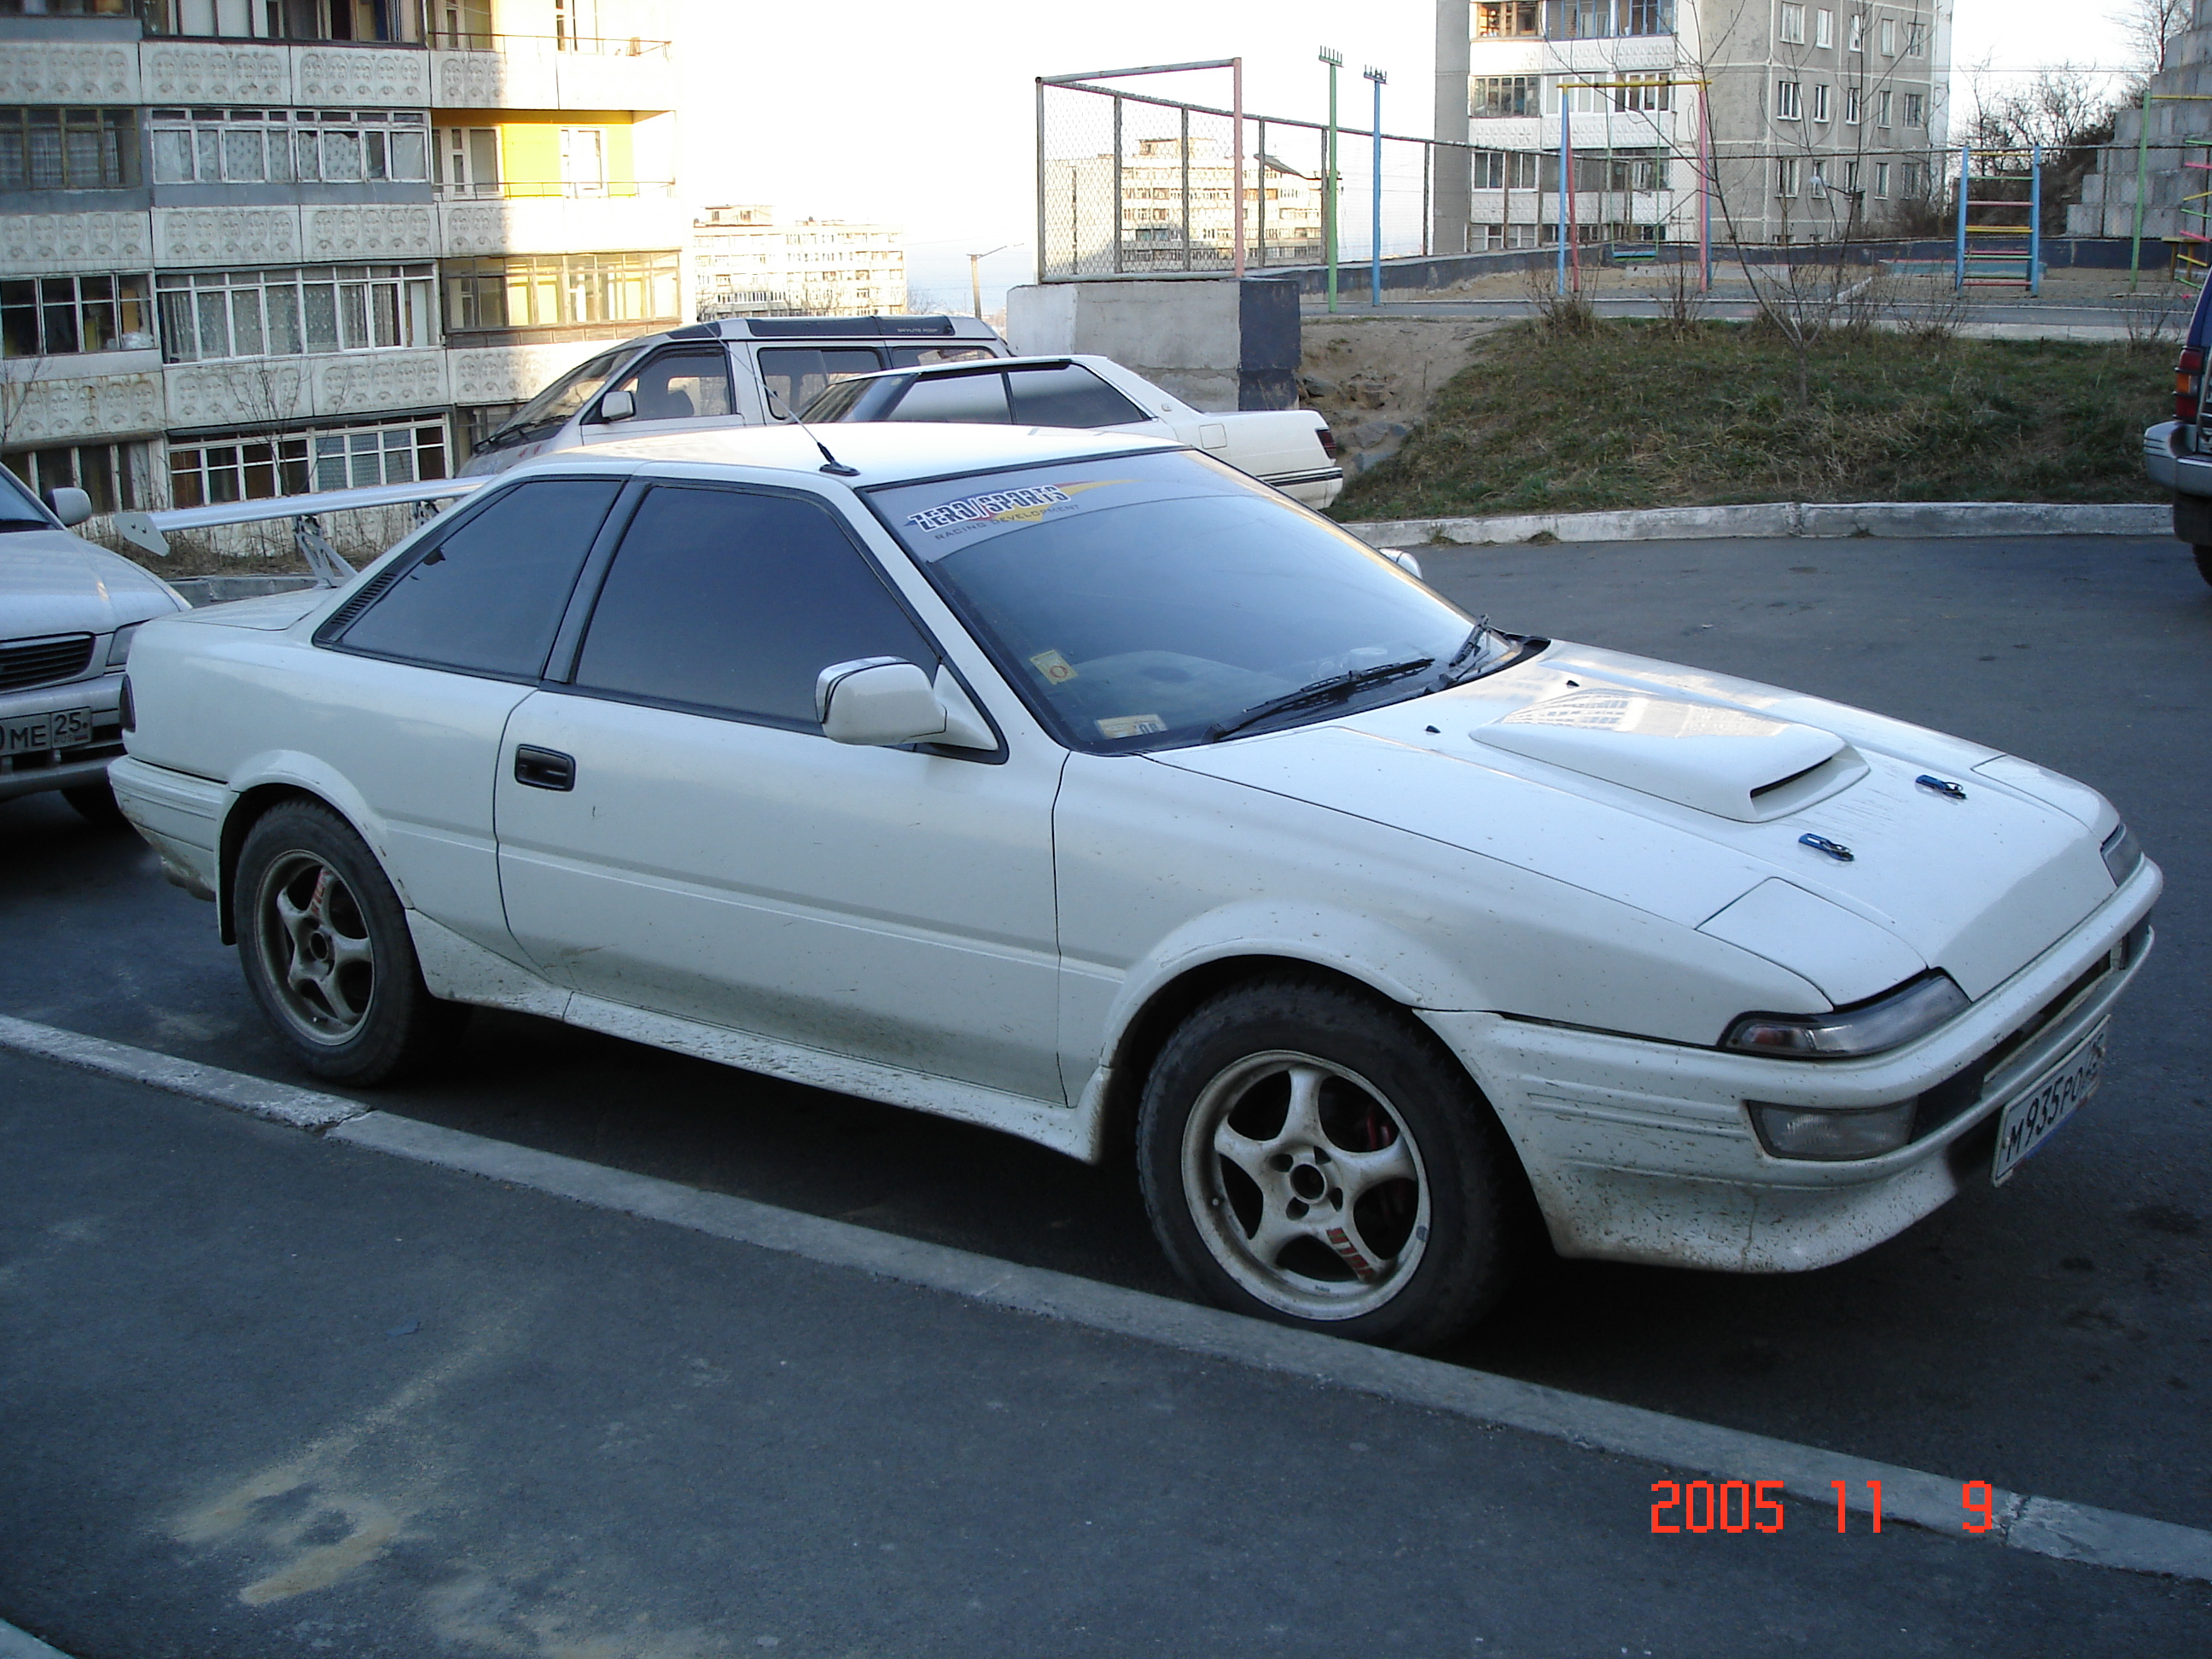 1989 toyota sprinter trueno pictures 1600cc gasoline ff manual for sale. Black Bedroom Furniture Sets. Home Design Ideas